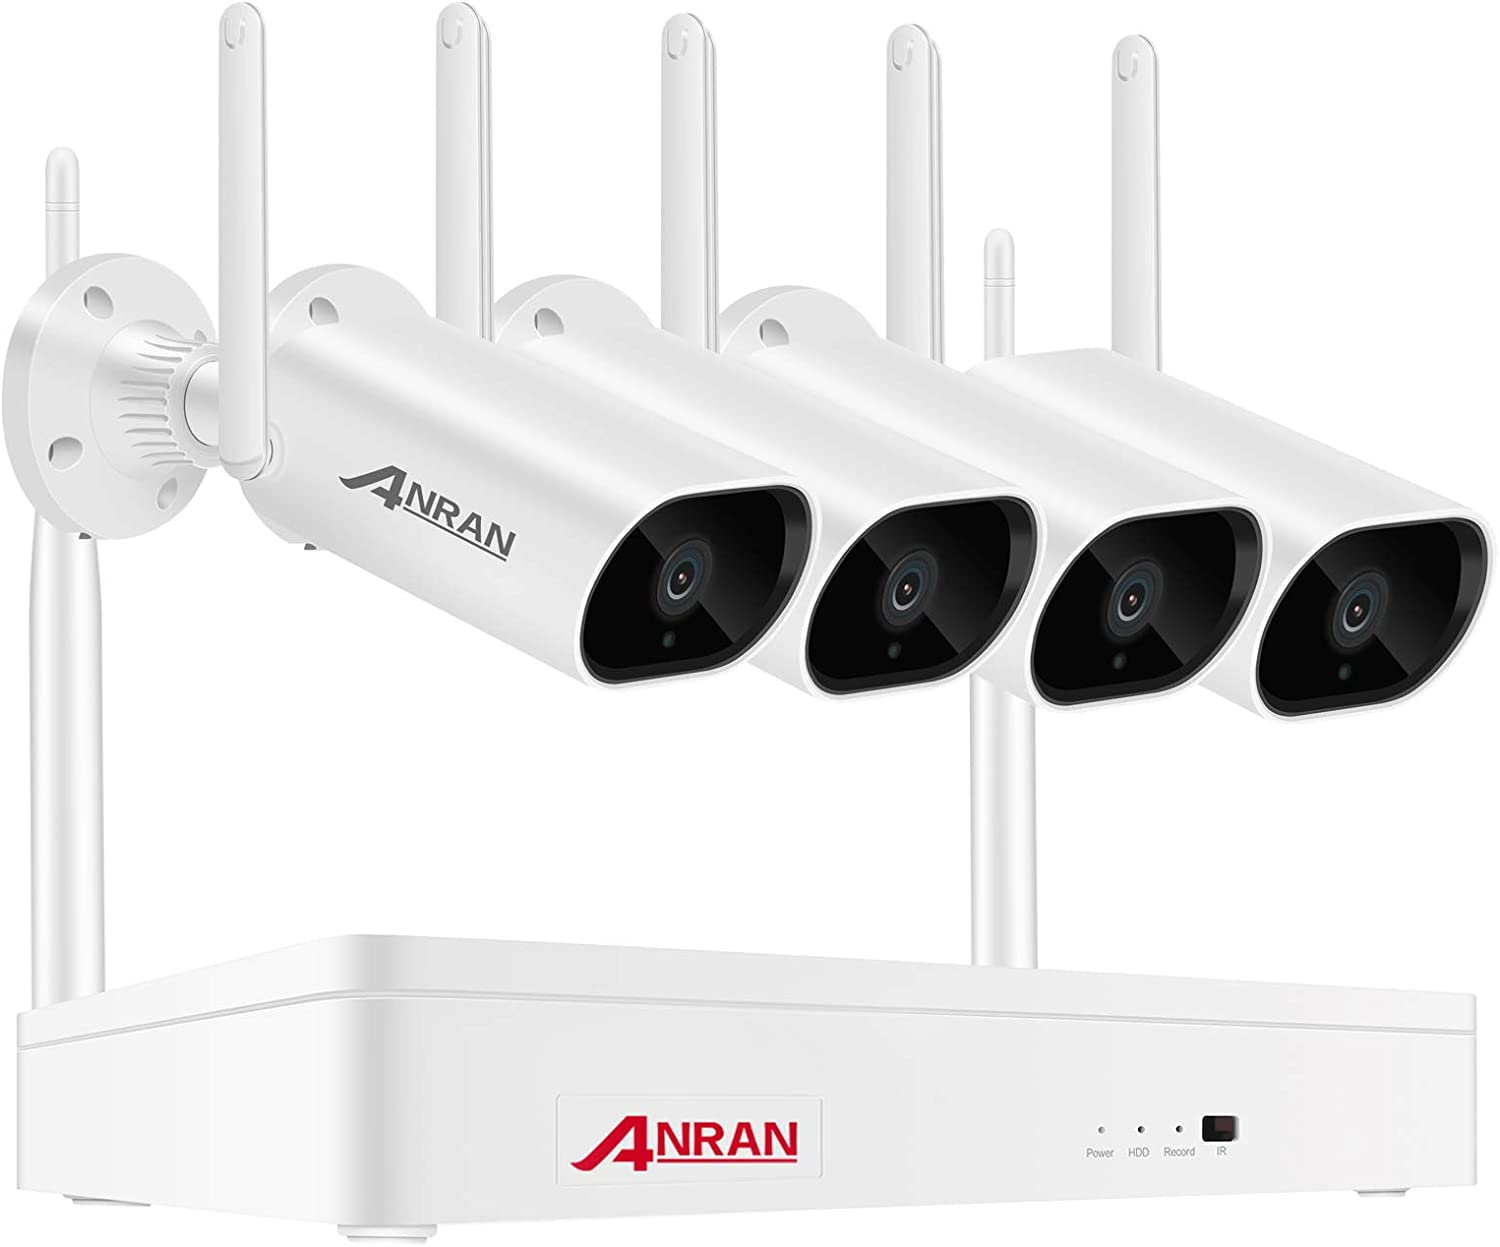 [Expandable 8CH and Audio Recording] Wireless Security Camera System with 1TB Hard Drive & One-Way Audio,ANRAN 8 Channel NVR 4Pcs 3.0MP Night Vision WiFi IP Surveillance Cameras Outdoor Indoor